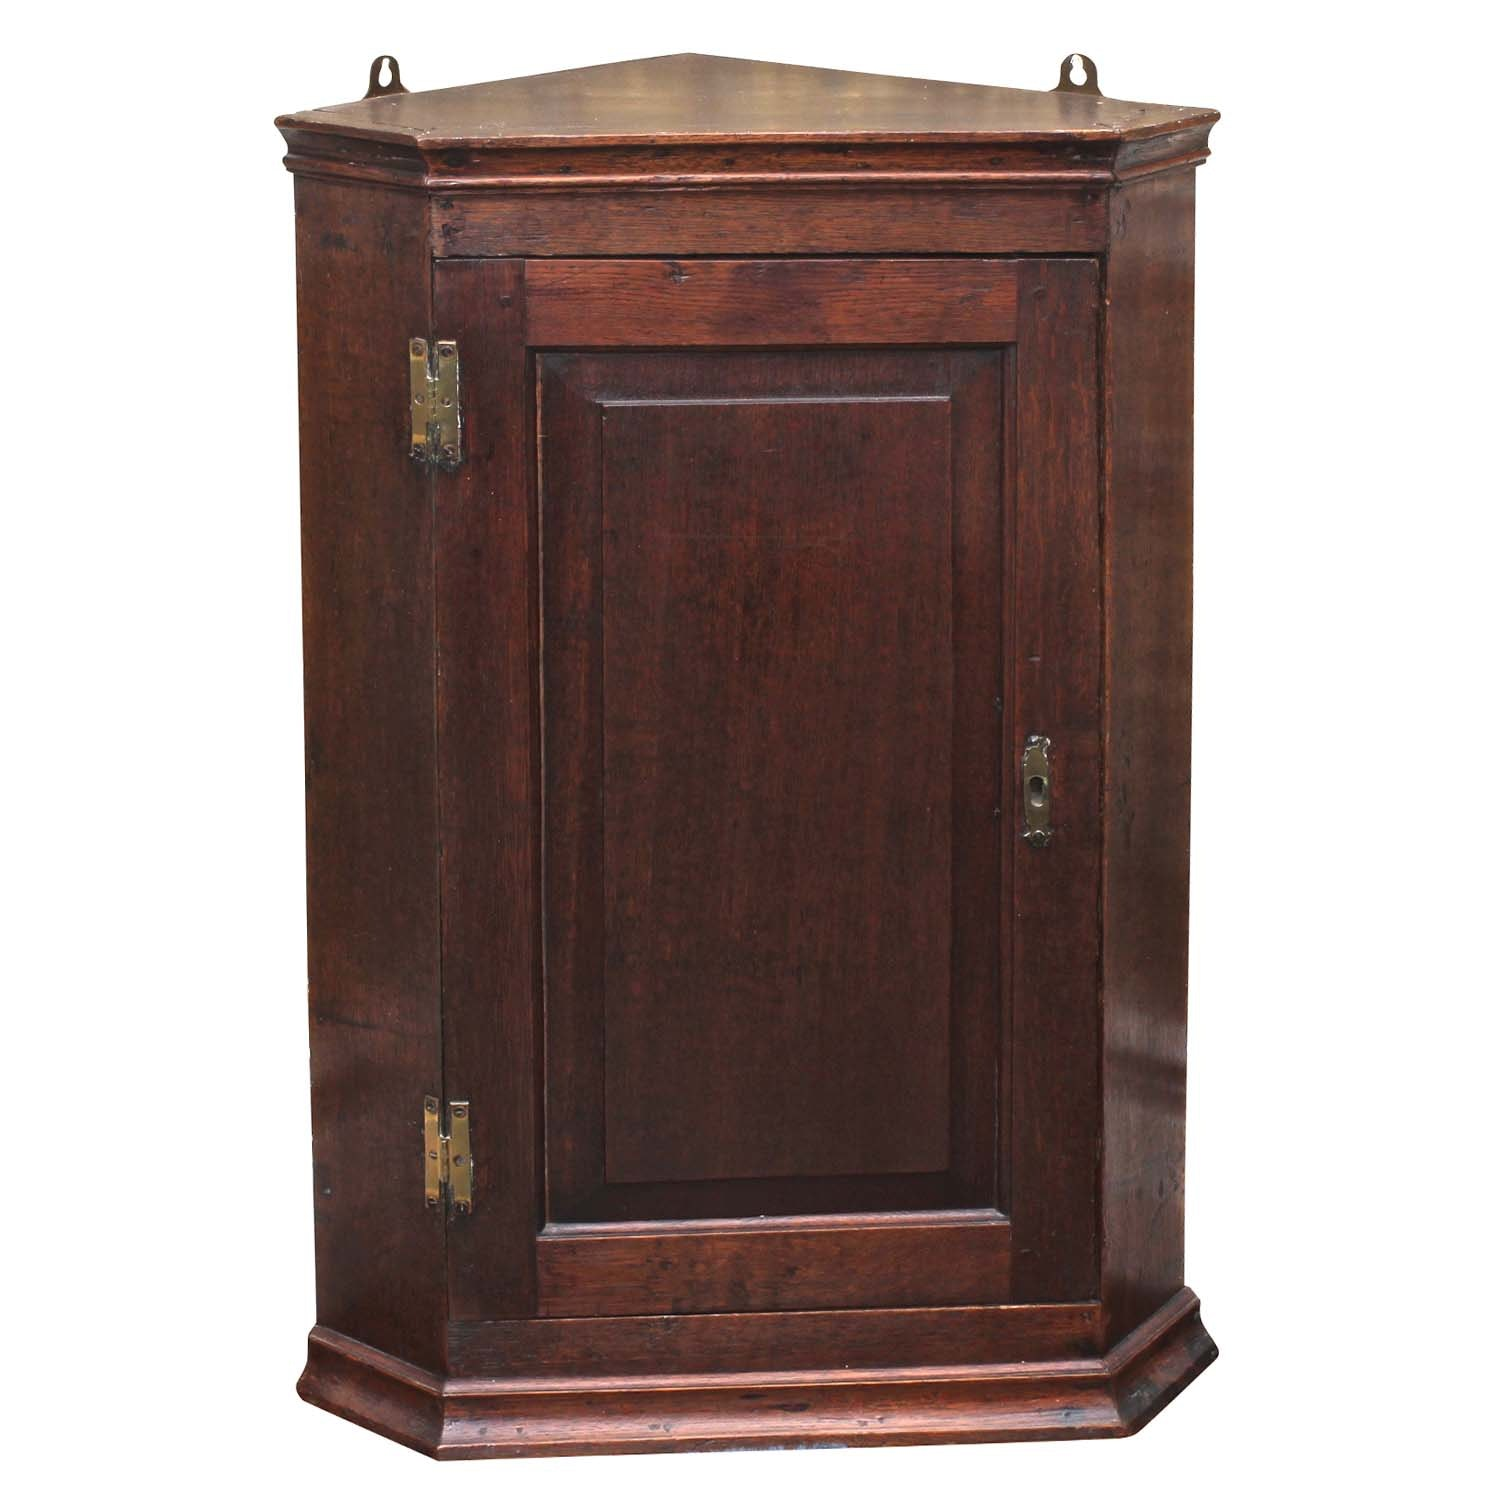 George III Oak Hanging Corner Cabinet, Early to Mid 19th Century